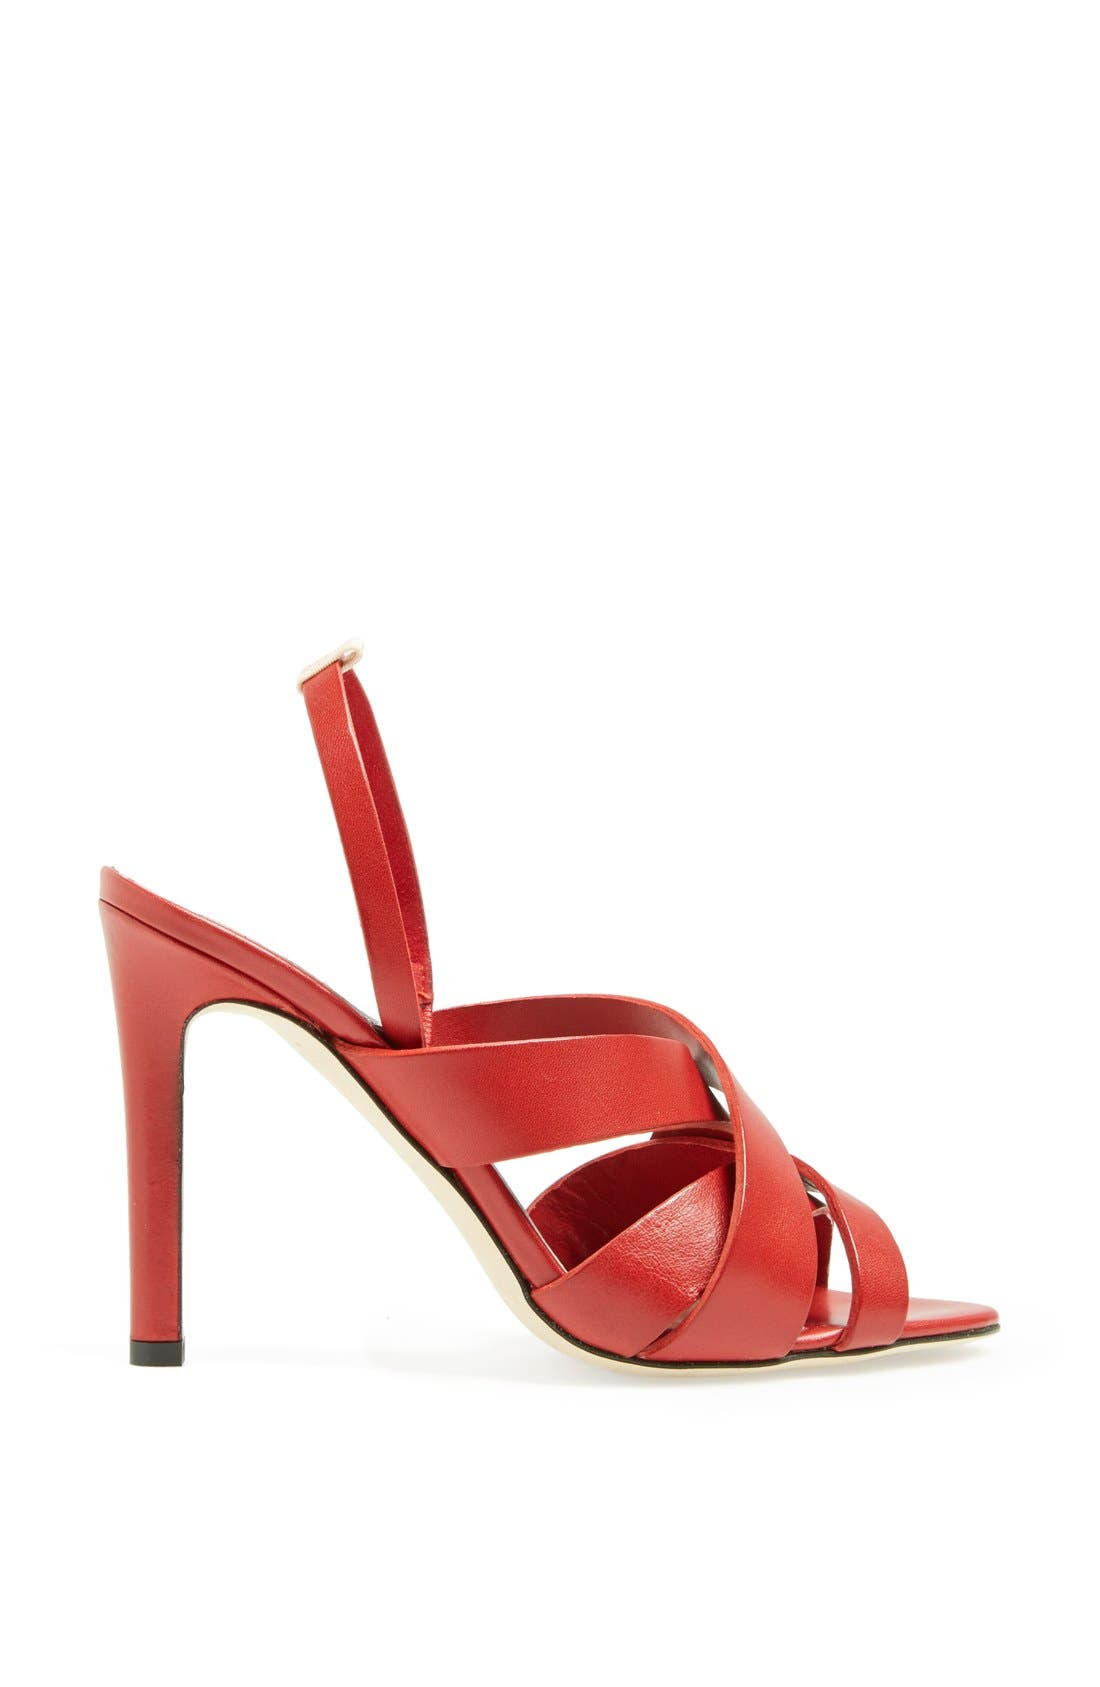 SJP 'Stella' Sandal,                             Alternate thumbnail 3, color,                             610